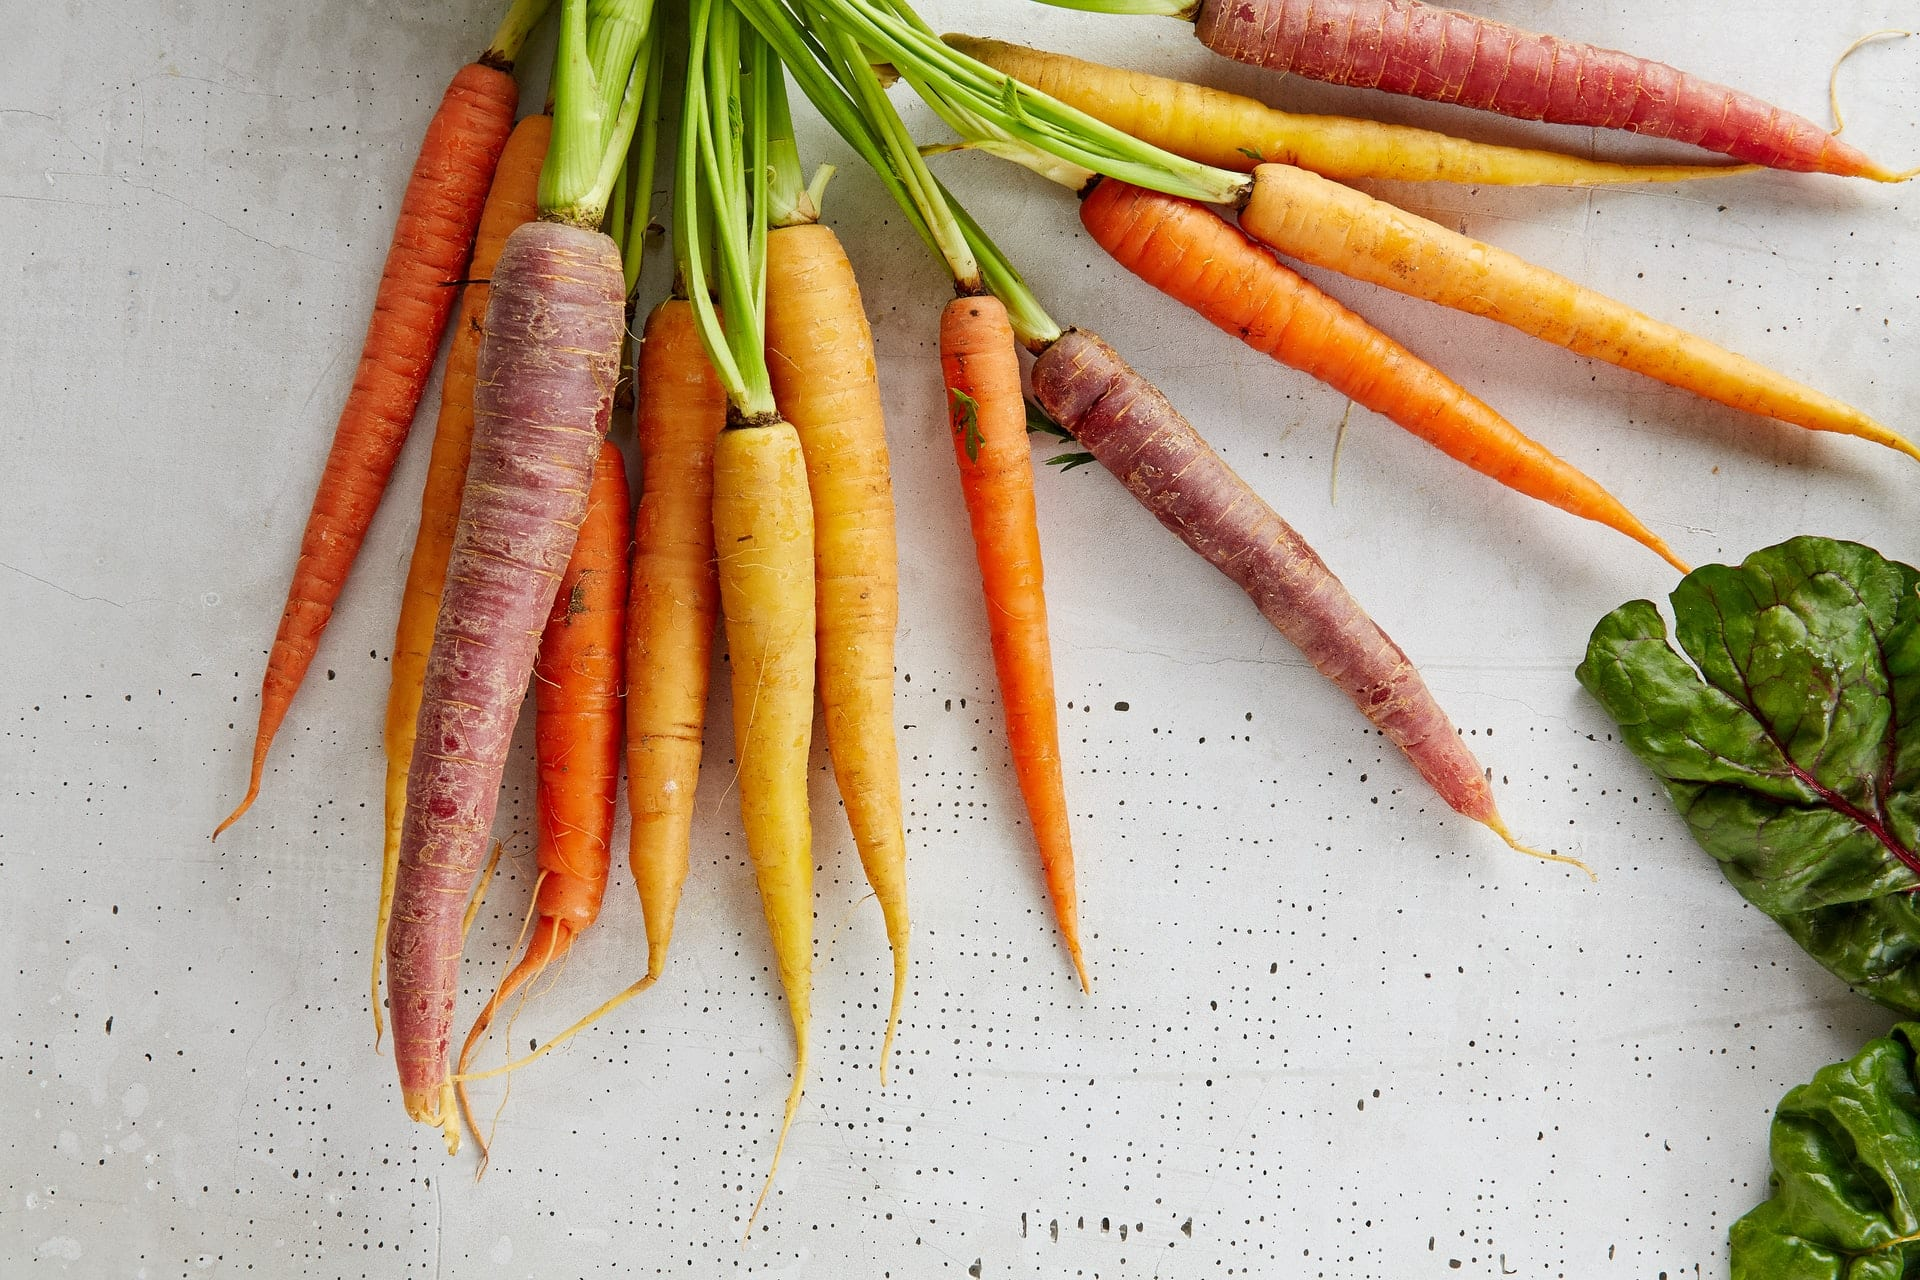 A bunch of different varieties of carrots